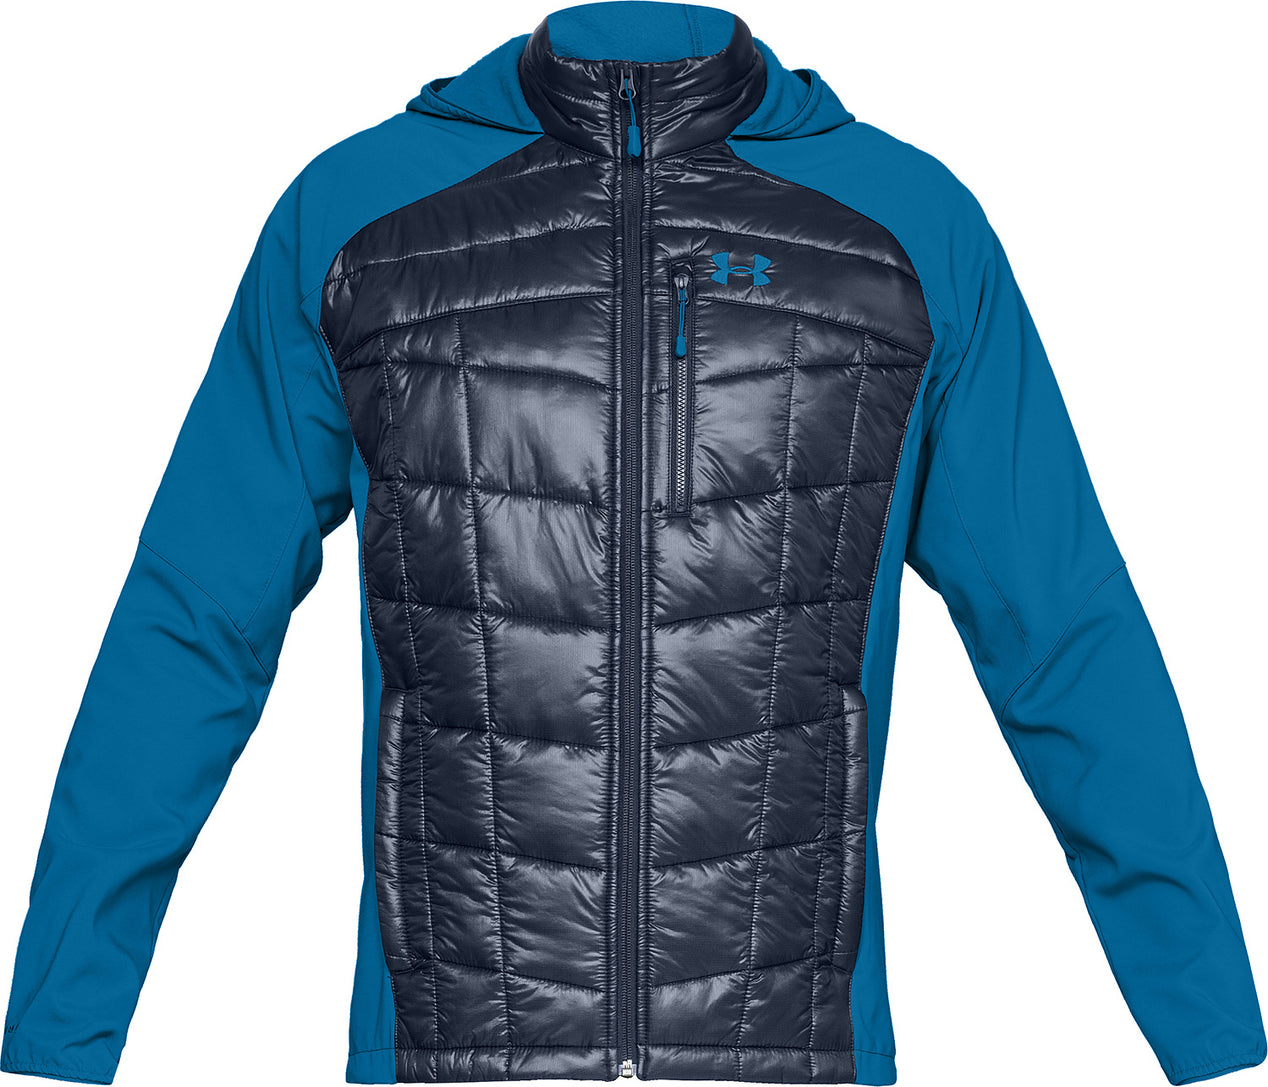 899c98dbf3 Under Armour Men's Encompass Hybrid Insulated Jacket